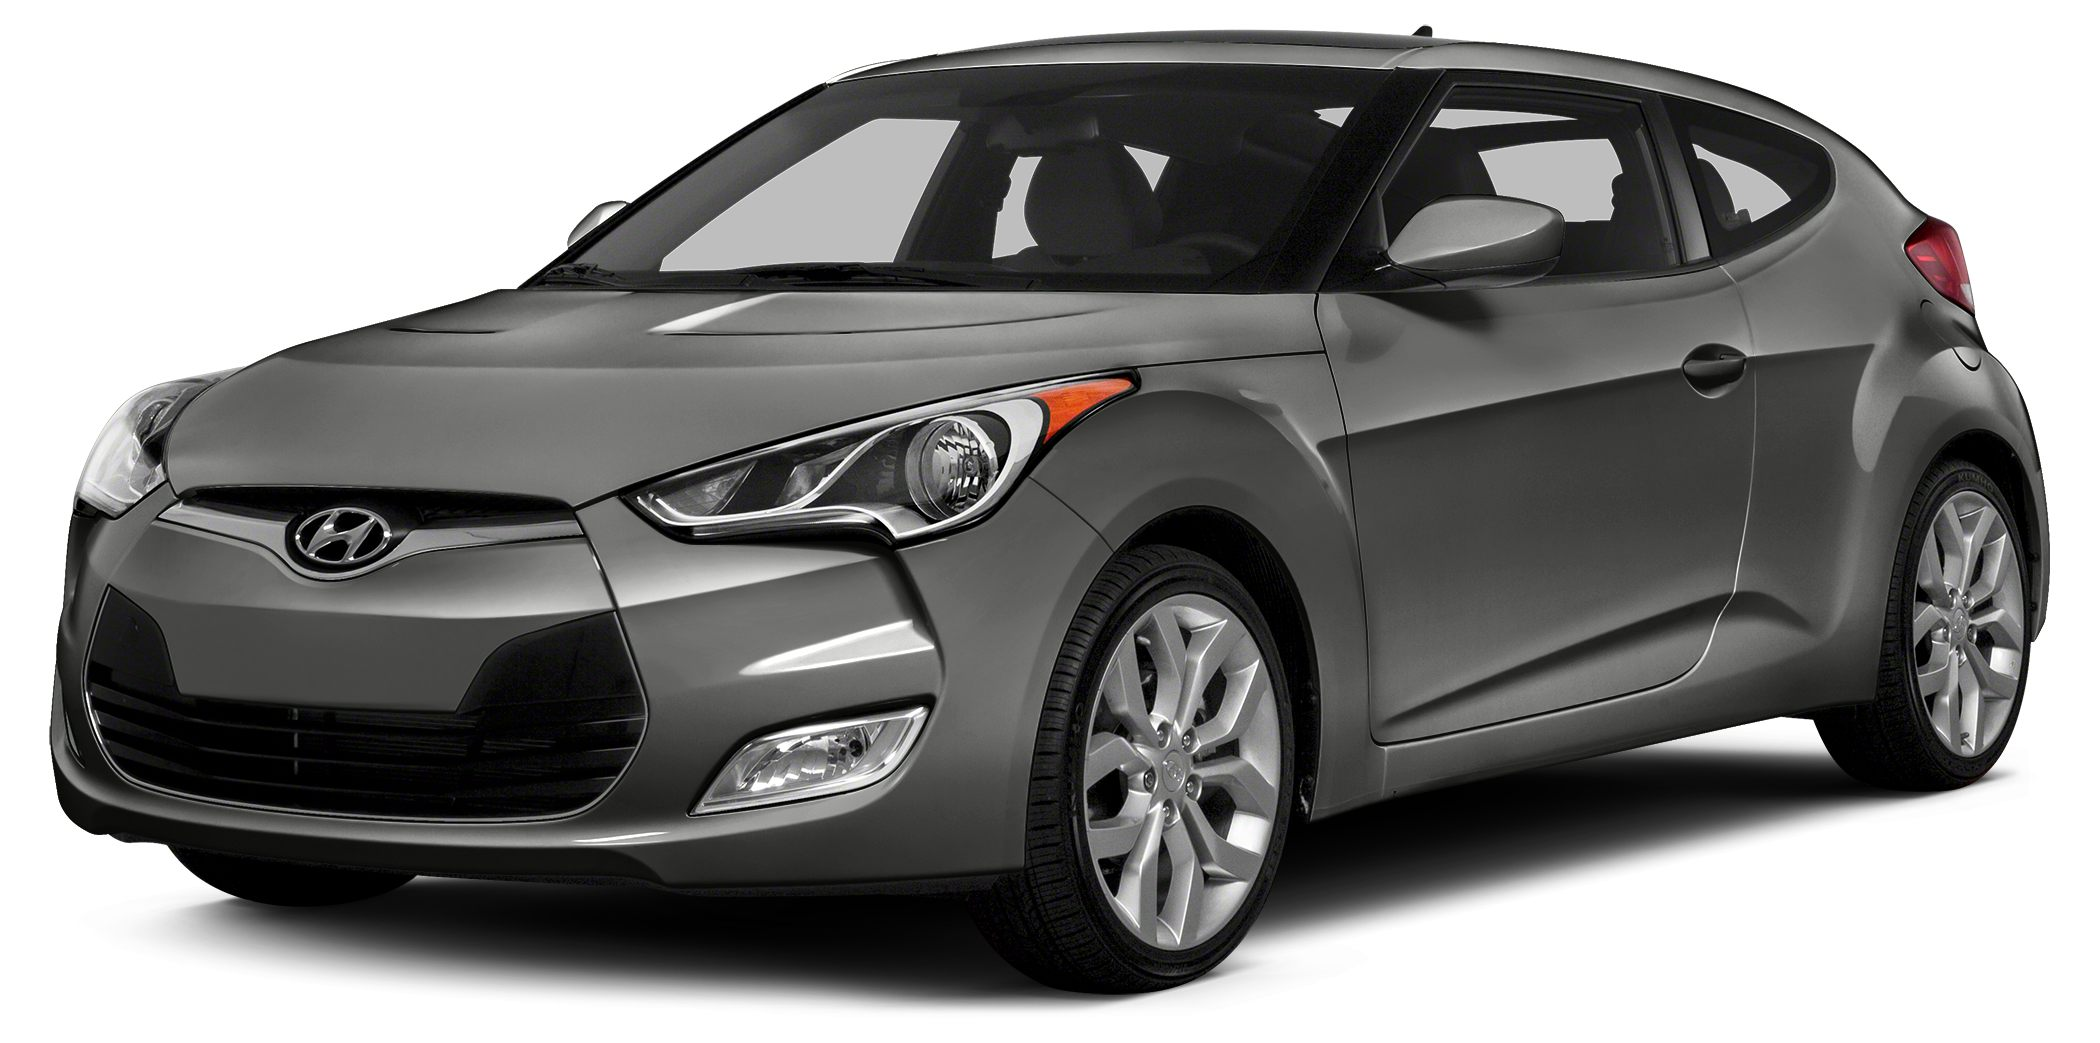 2013 Hyundai Veloster Base wBlack LIGHT UP THE TRIP with this Veloster  Youll also get PANORAM